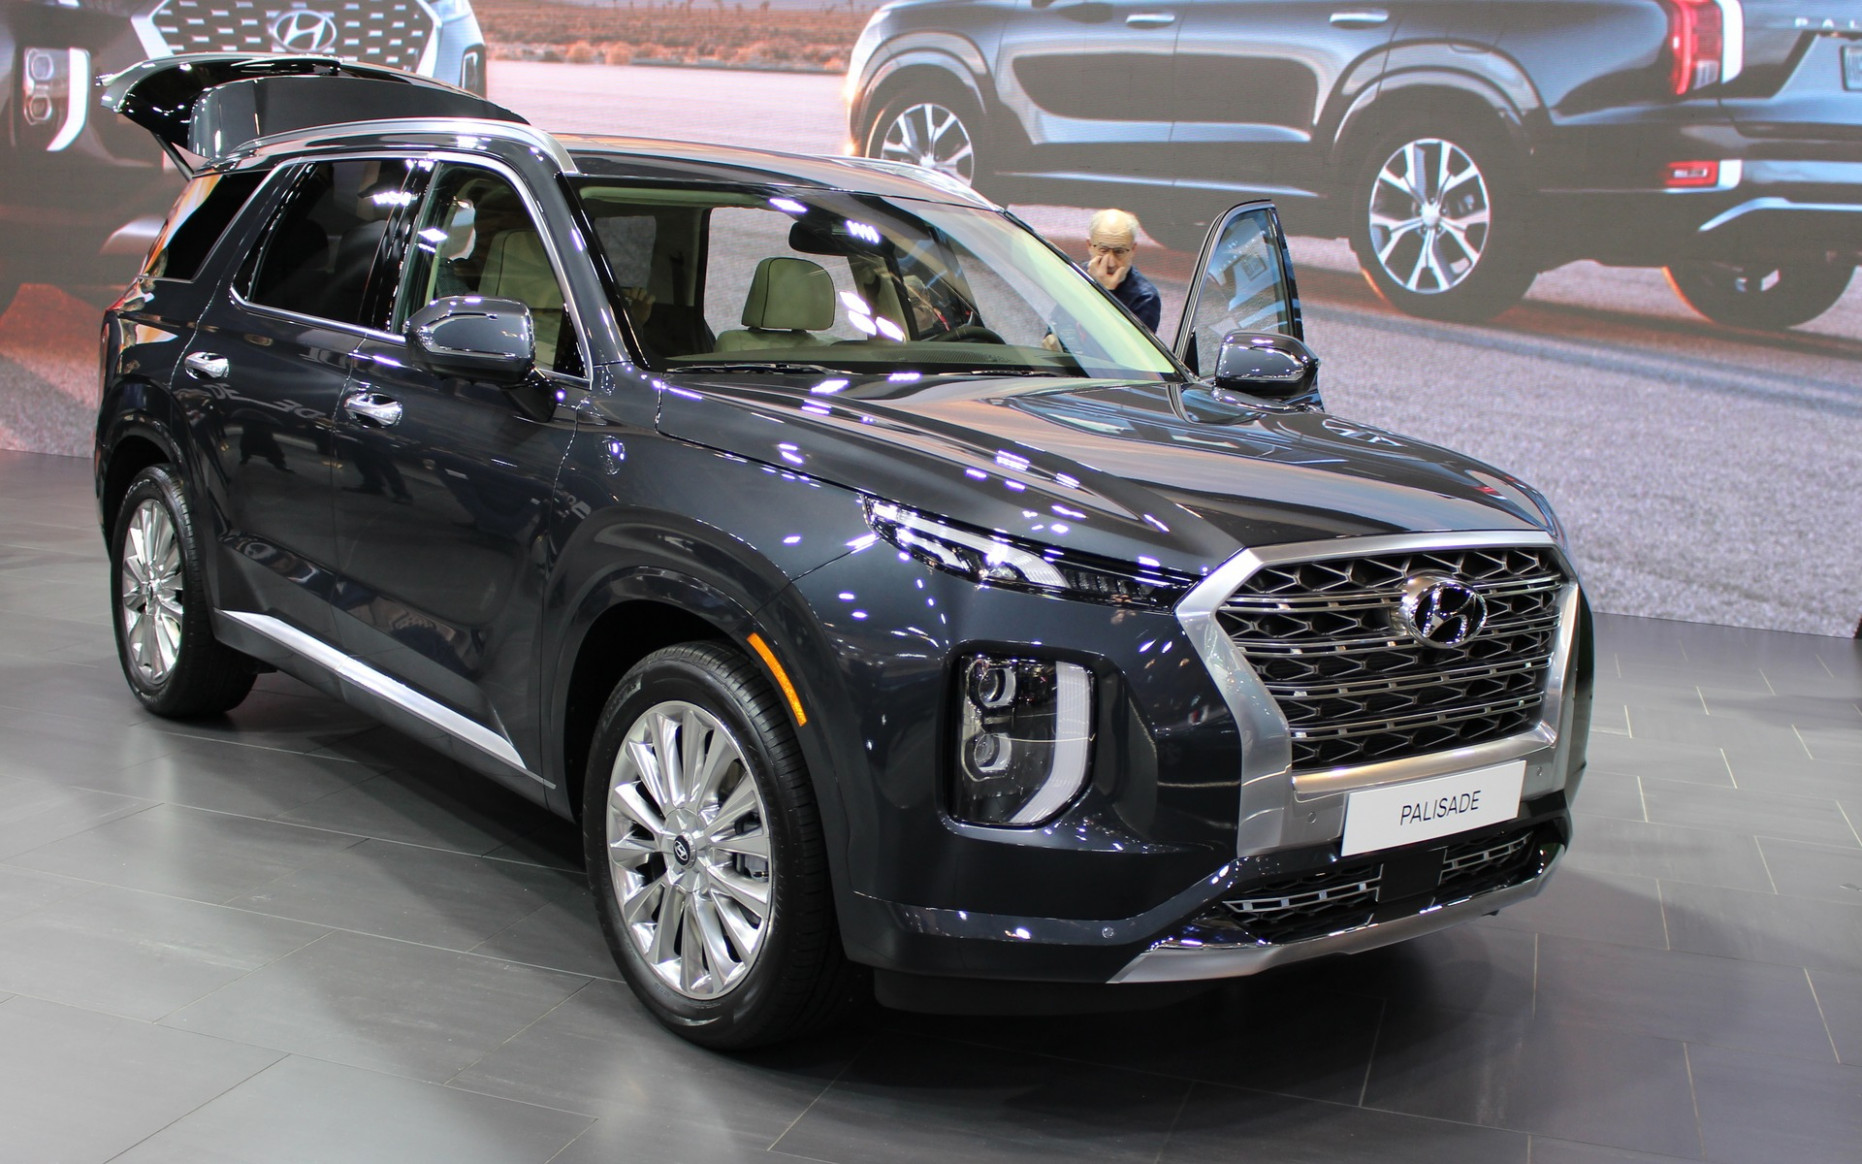 7 Hyundai Palisade Makes Canadian Premiere in Toronto - The Car ..